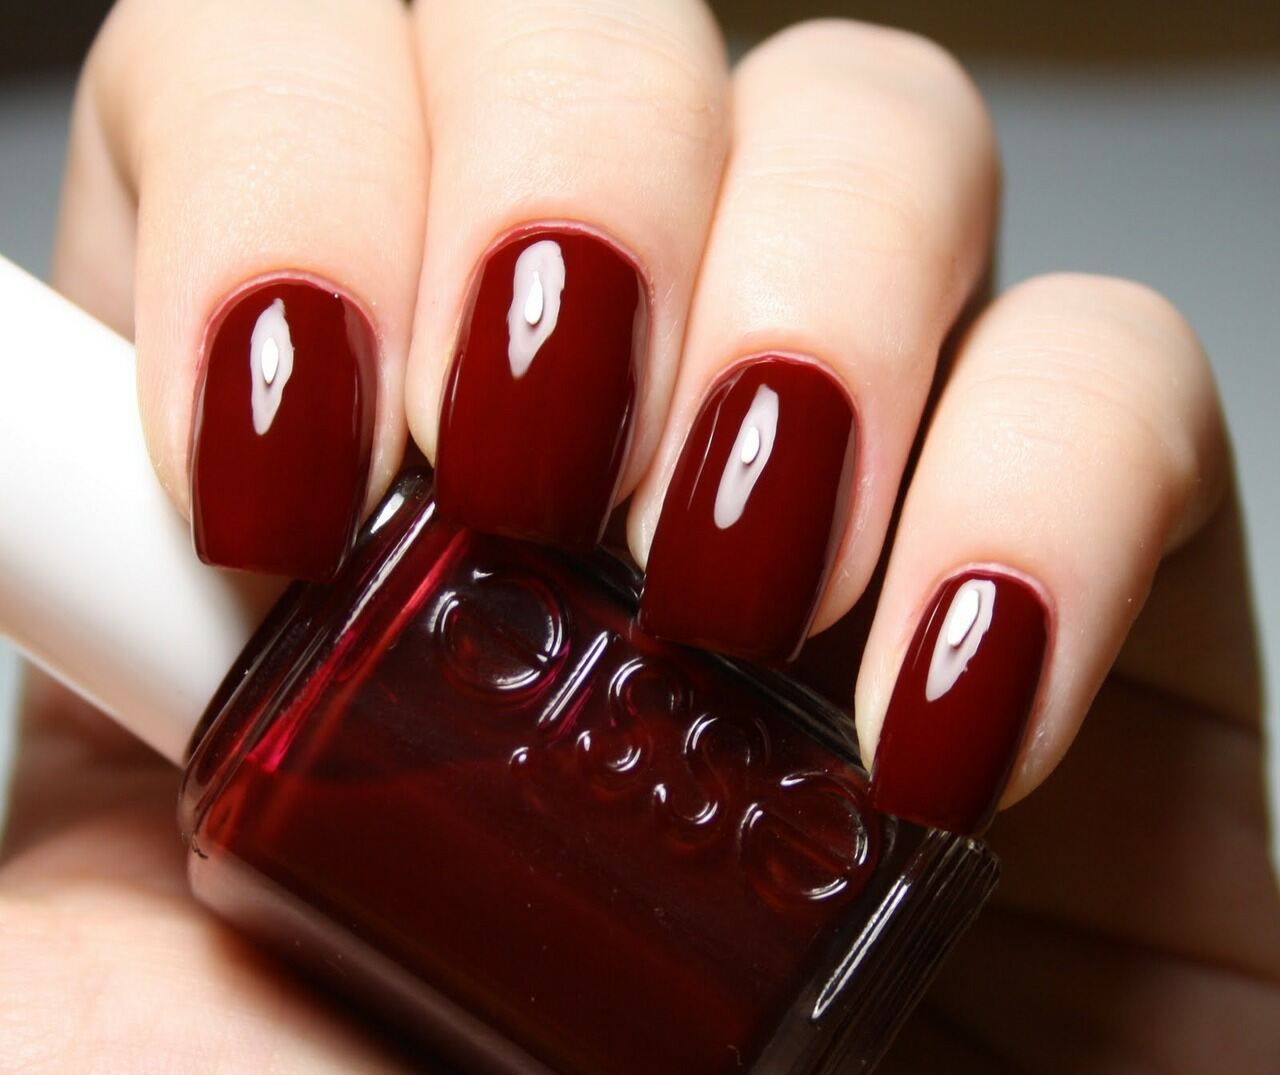 Essie burgundy dark red nail colour nail polish in ...